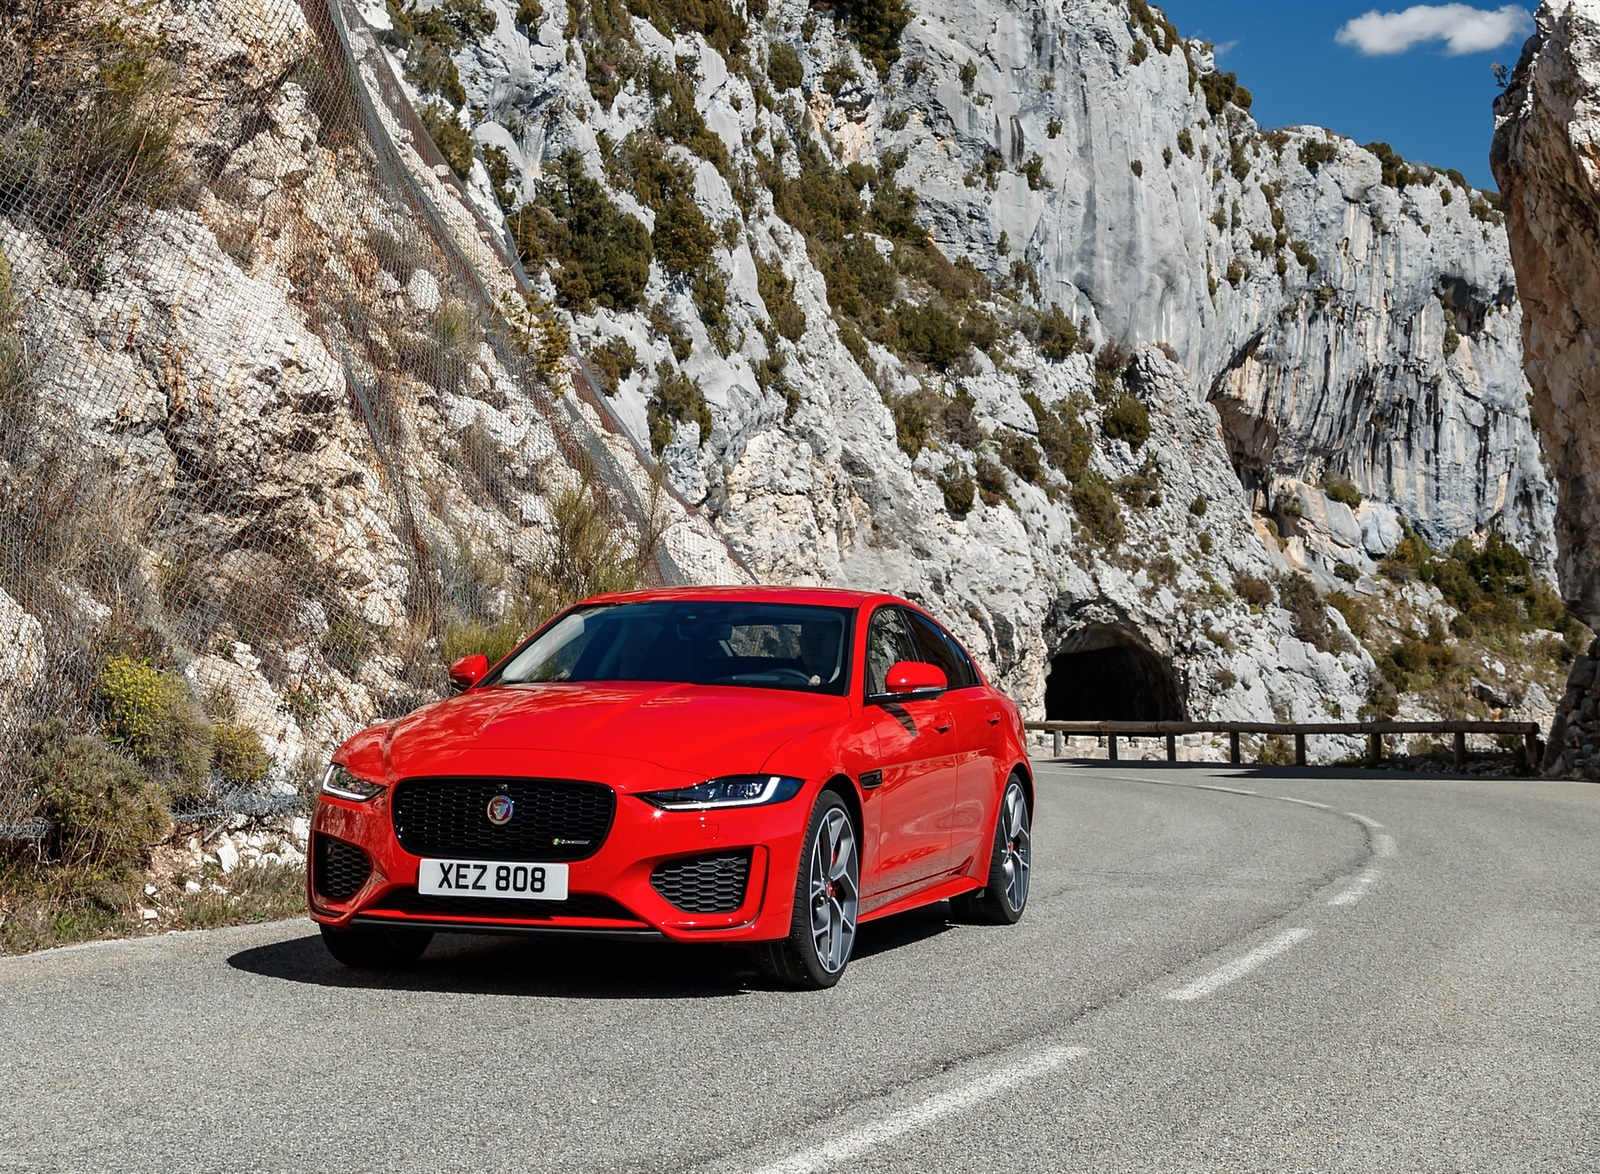 2020 Jaguar XE S R-Dynamic P300 (Color: Caldera Red) Front Wallpapers (13)